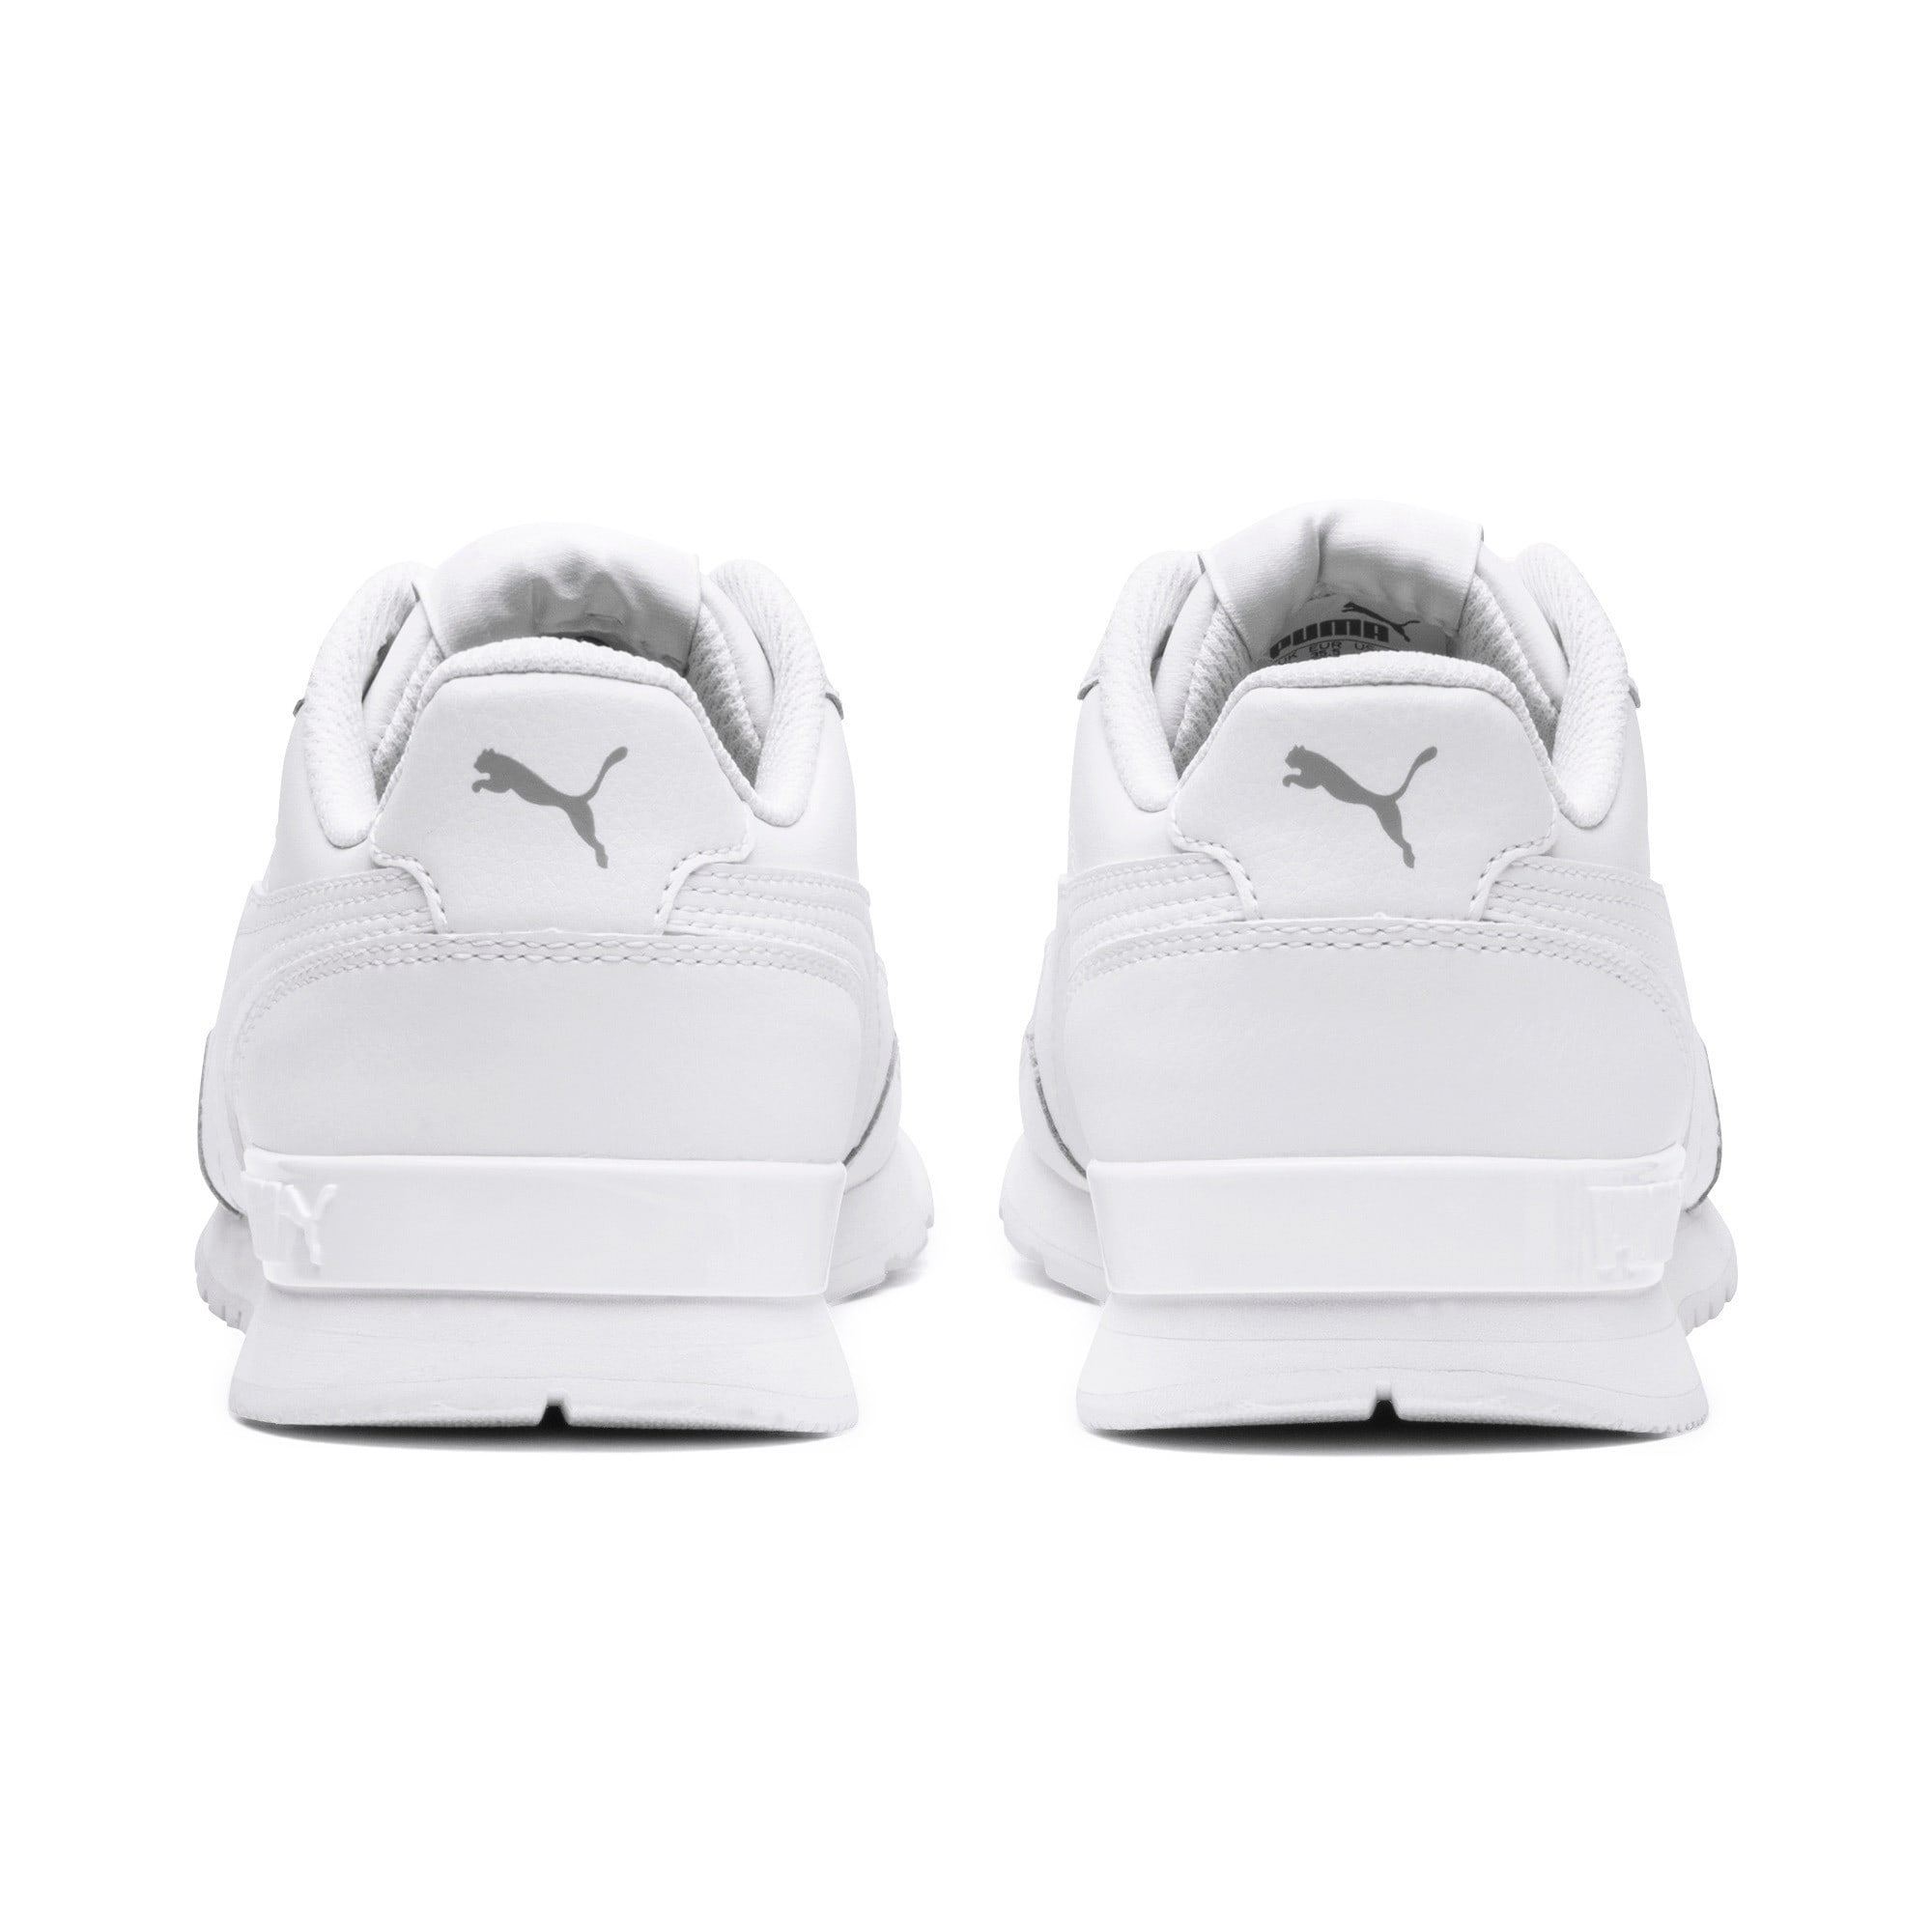 Thumbnail 3 of ST Runner v2 L Youth Trainers, Puma White-Gray Violet, medium-IND